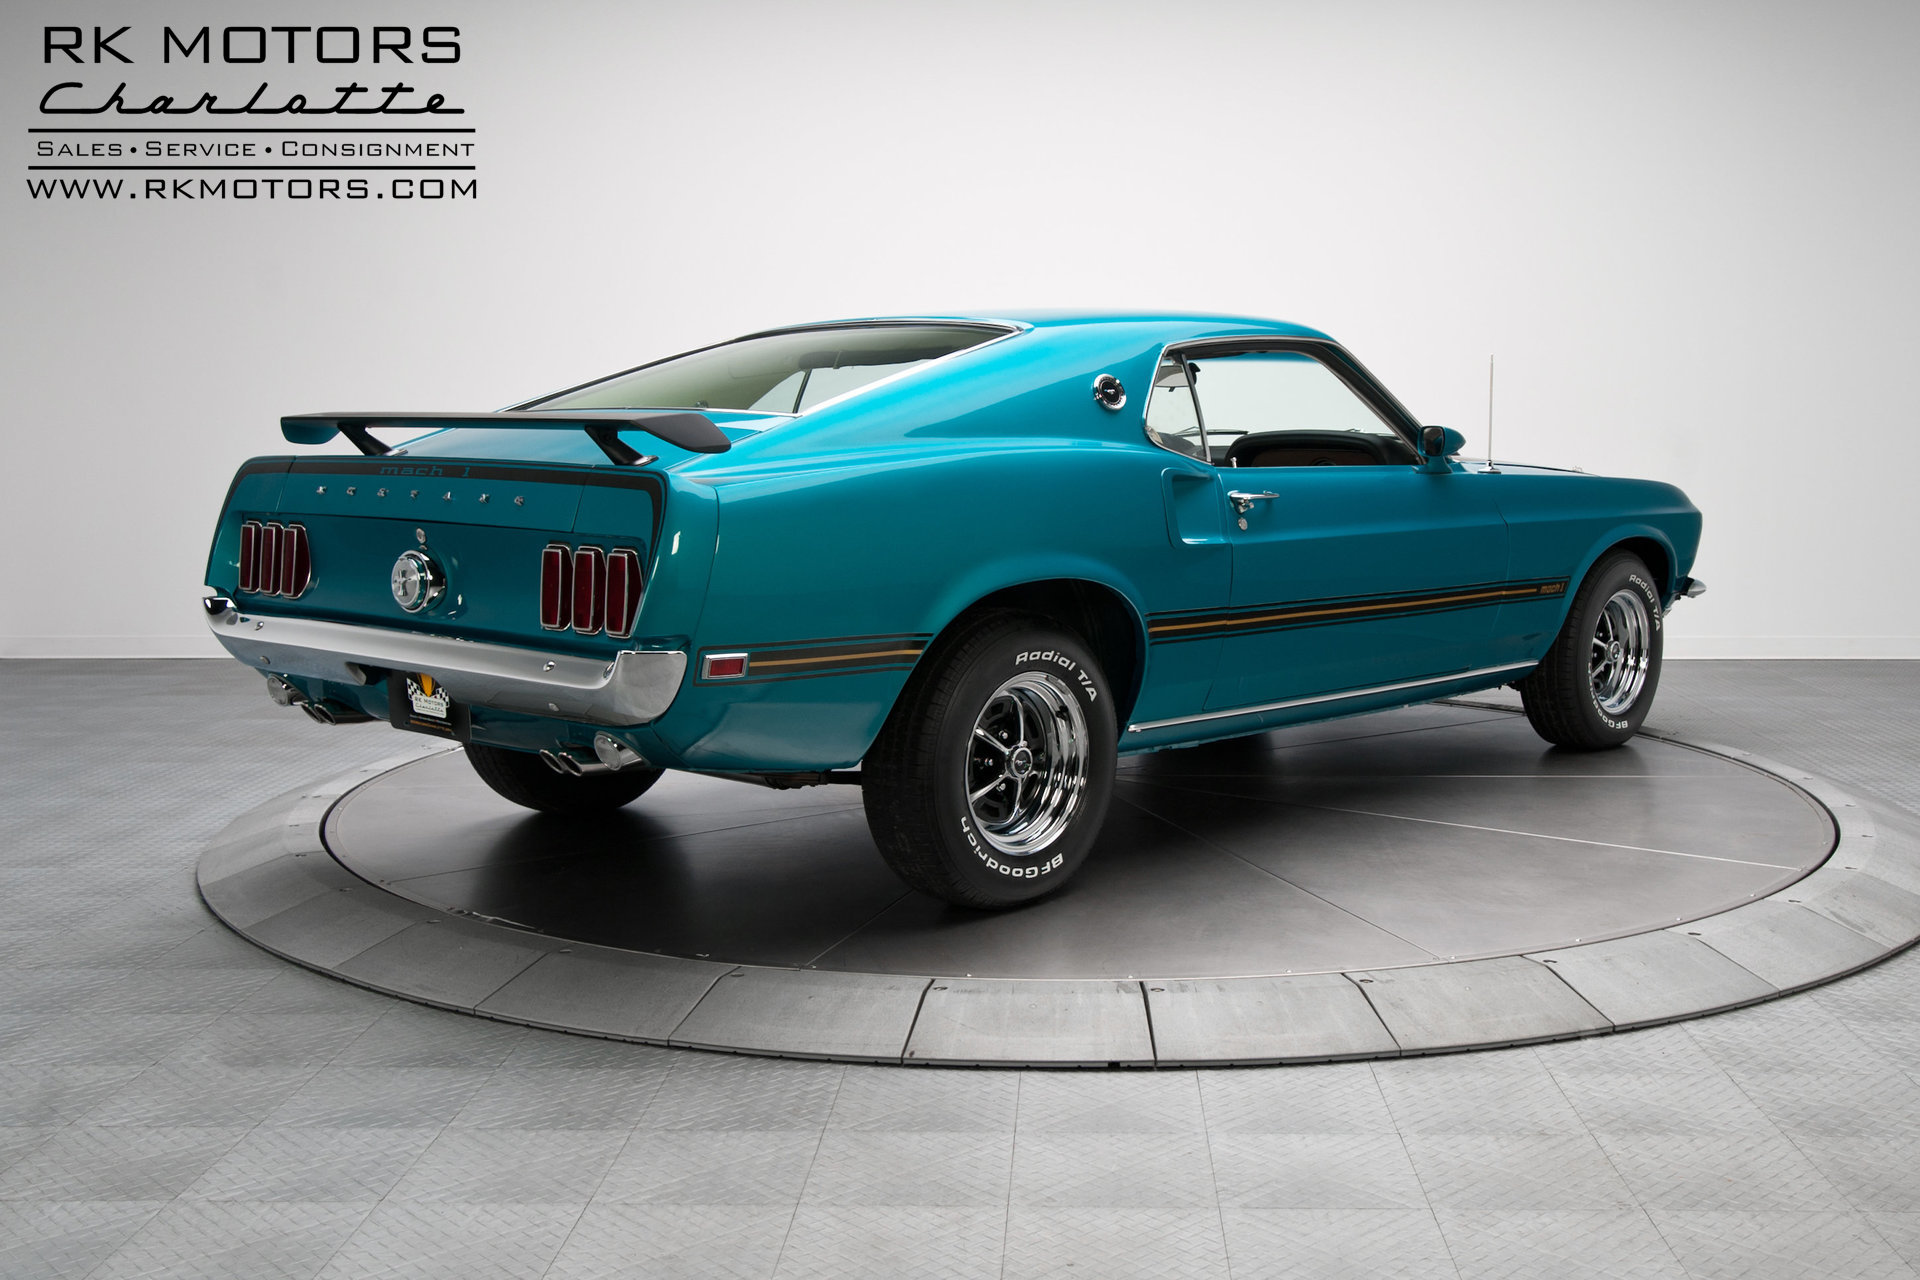 134184 1969 Ford Mustang Rk Motors Classic And Performance Cars Mach 1 Gulfstream Aqua For Sale